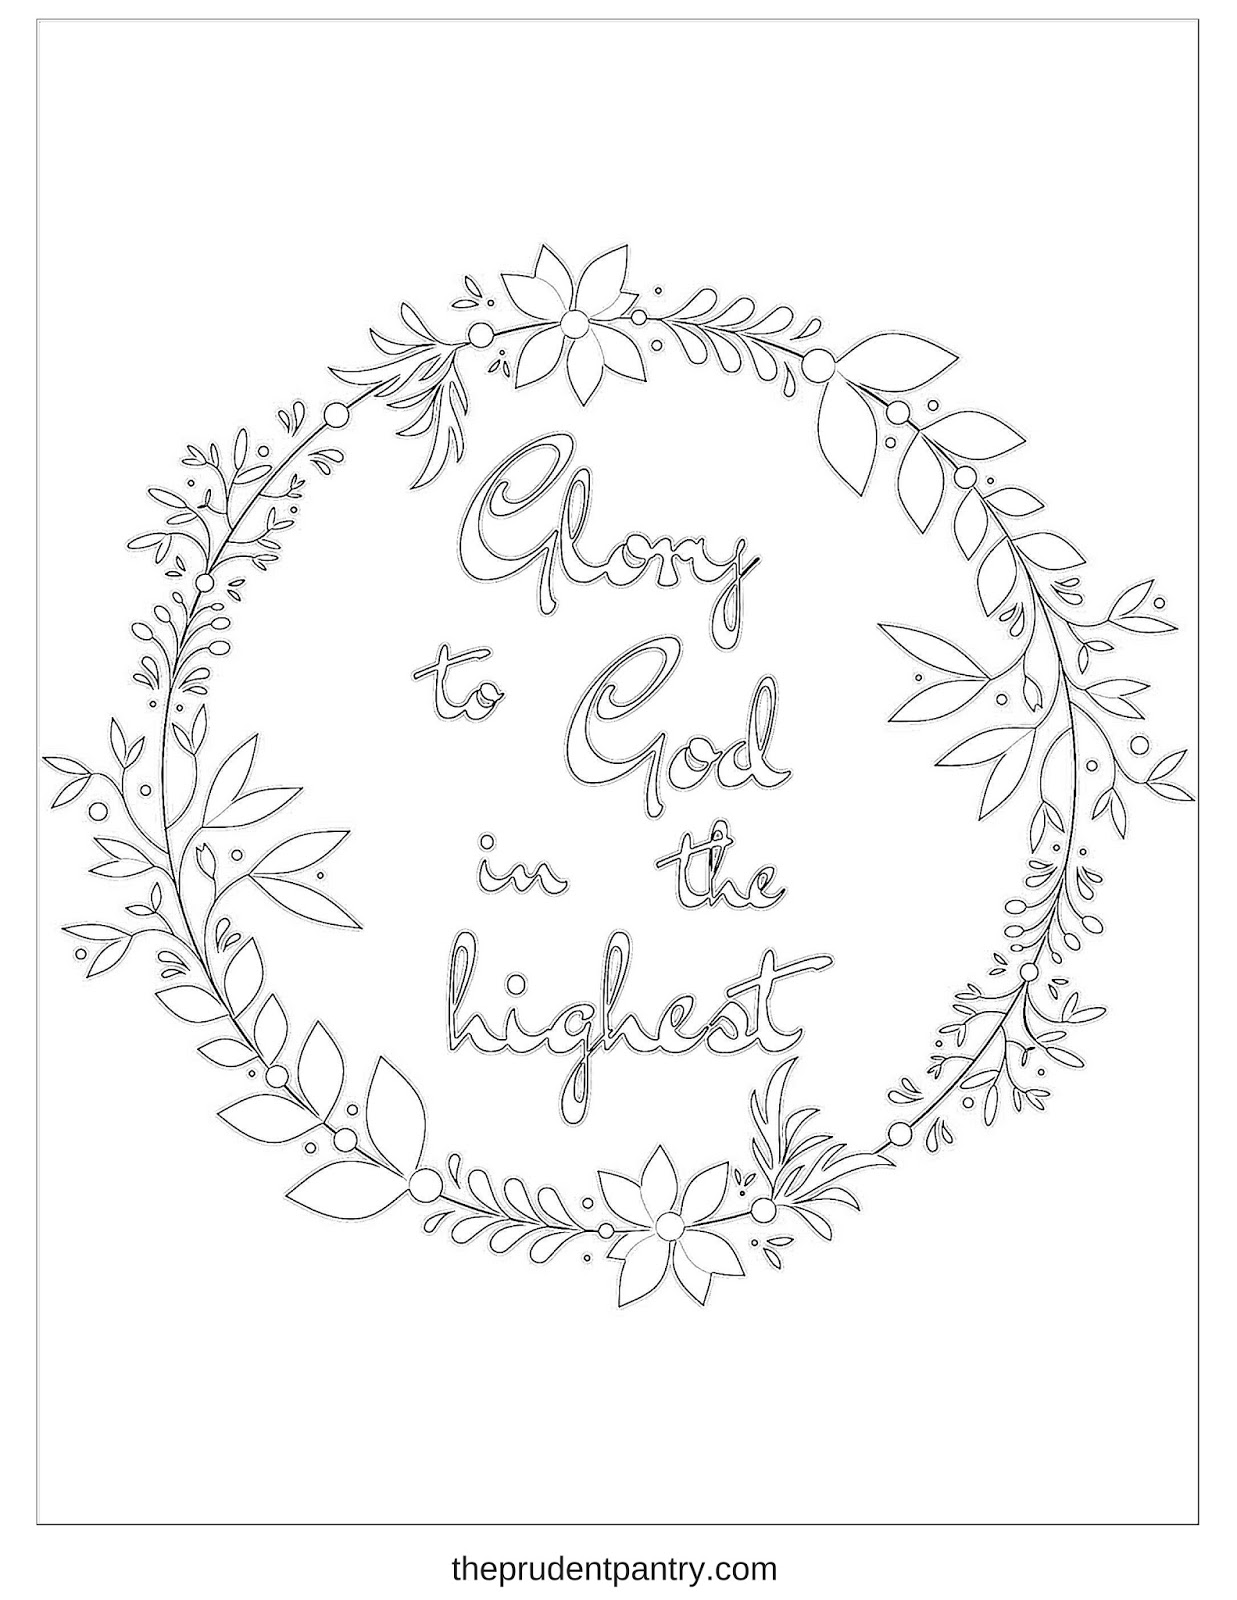 the prudent pantry glory to god in the highest printable